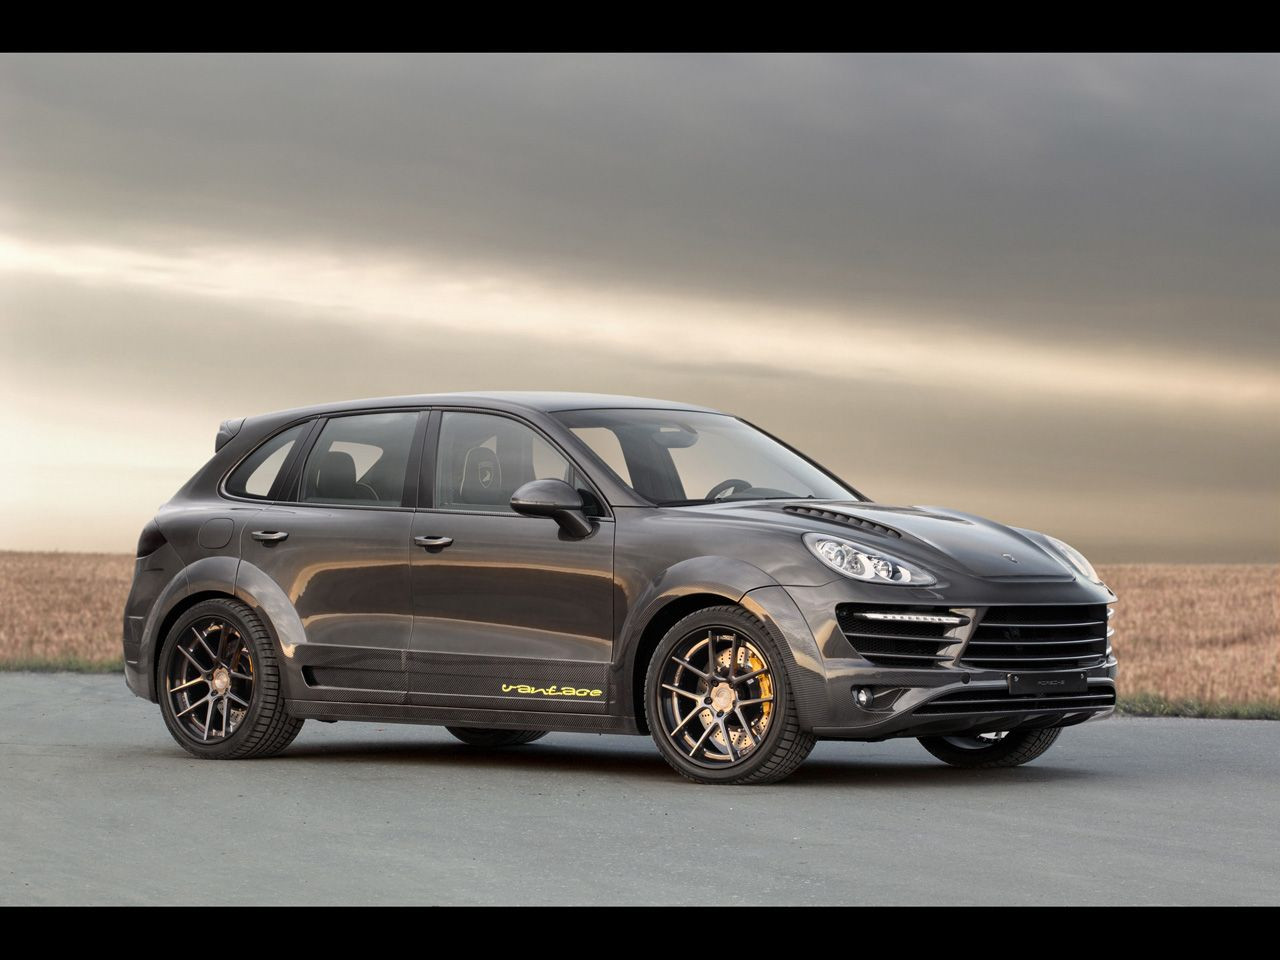 Gemballa tornado based on porsche 958 cayenne with gemballa product warranty life of luxury pinterest cars